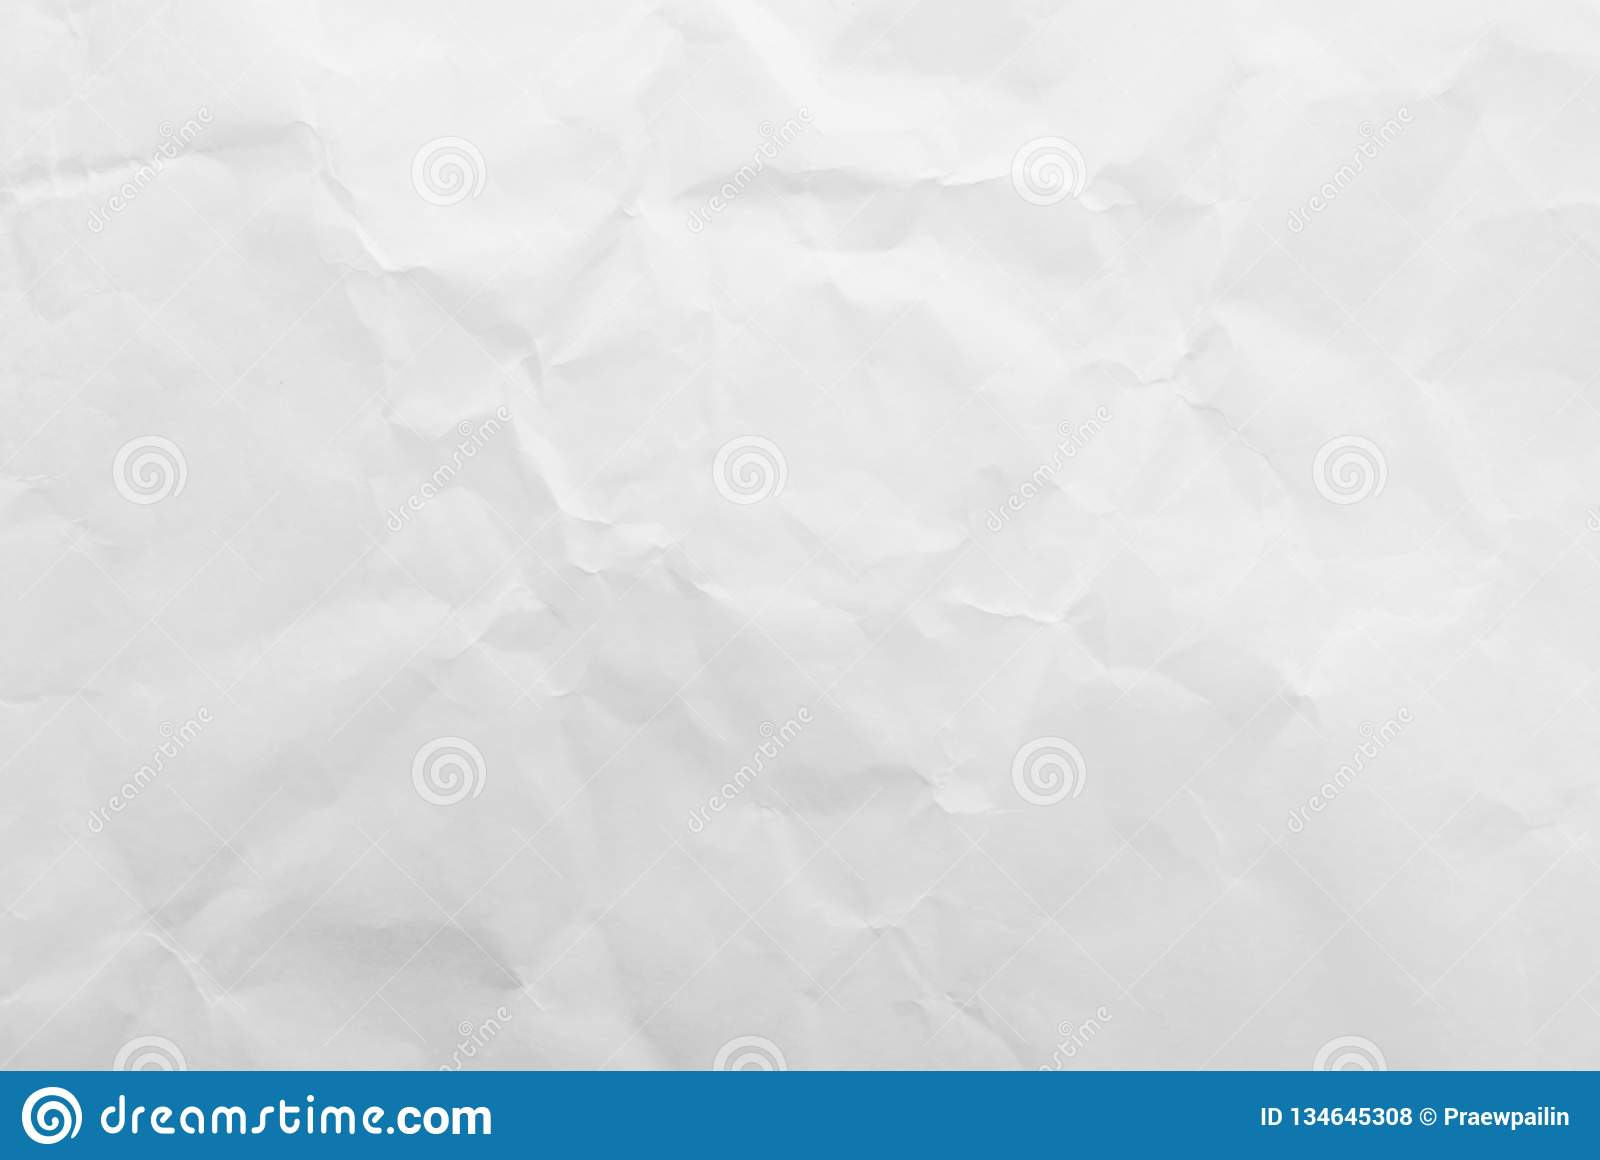 White crumpled paper texture background. Close-up